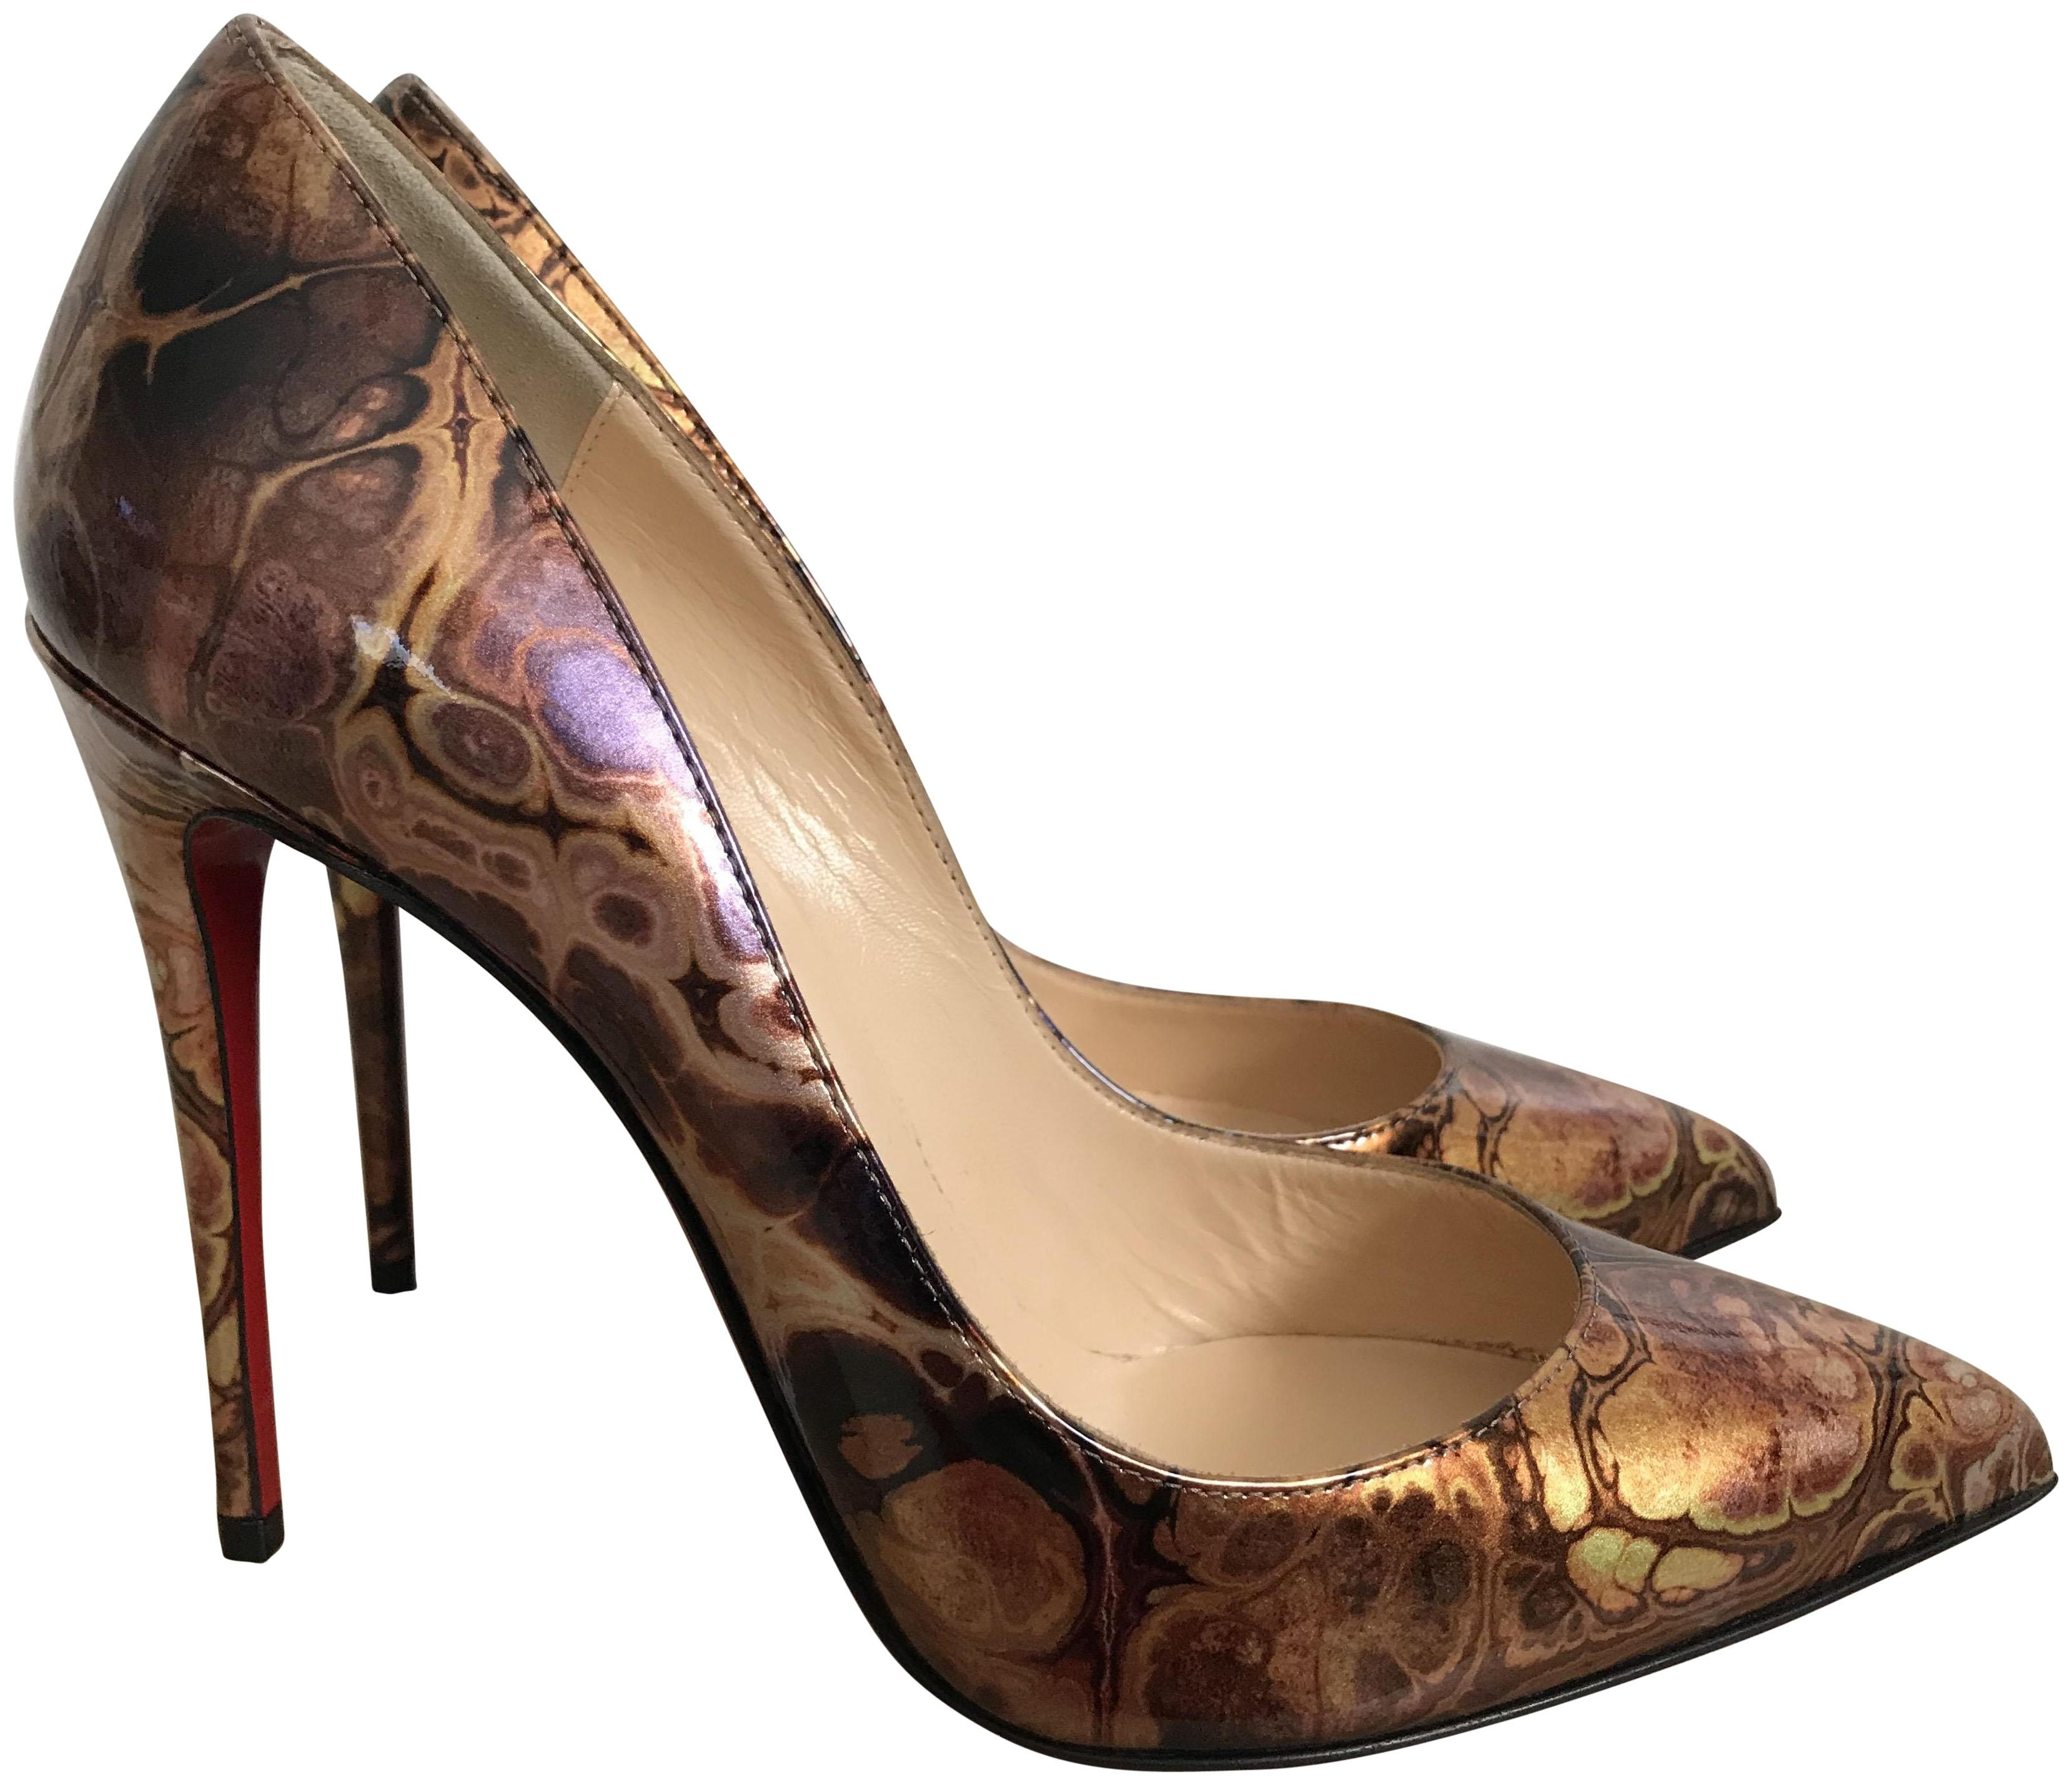 dff6a5ced299 Christian Christian Christian Louboutin Brown Bronze Pigalle Follies  Saturne Patent Pointed Pumps Size EU 37 ...